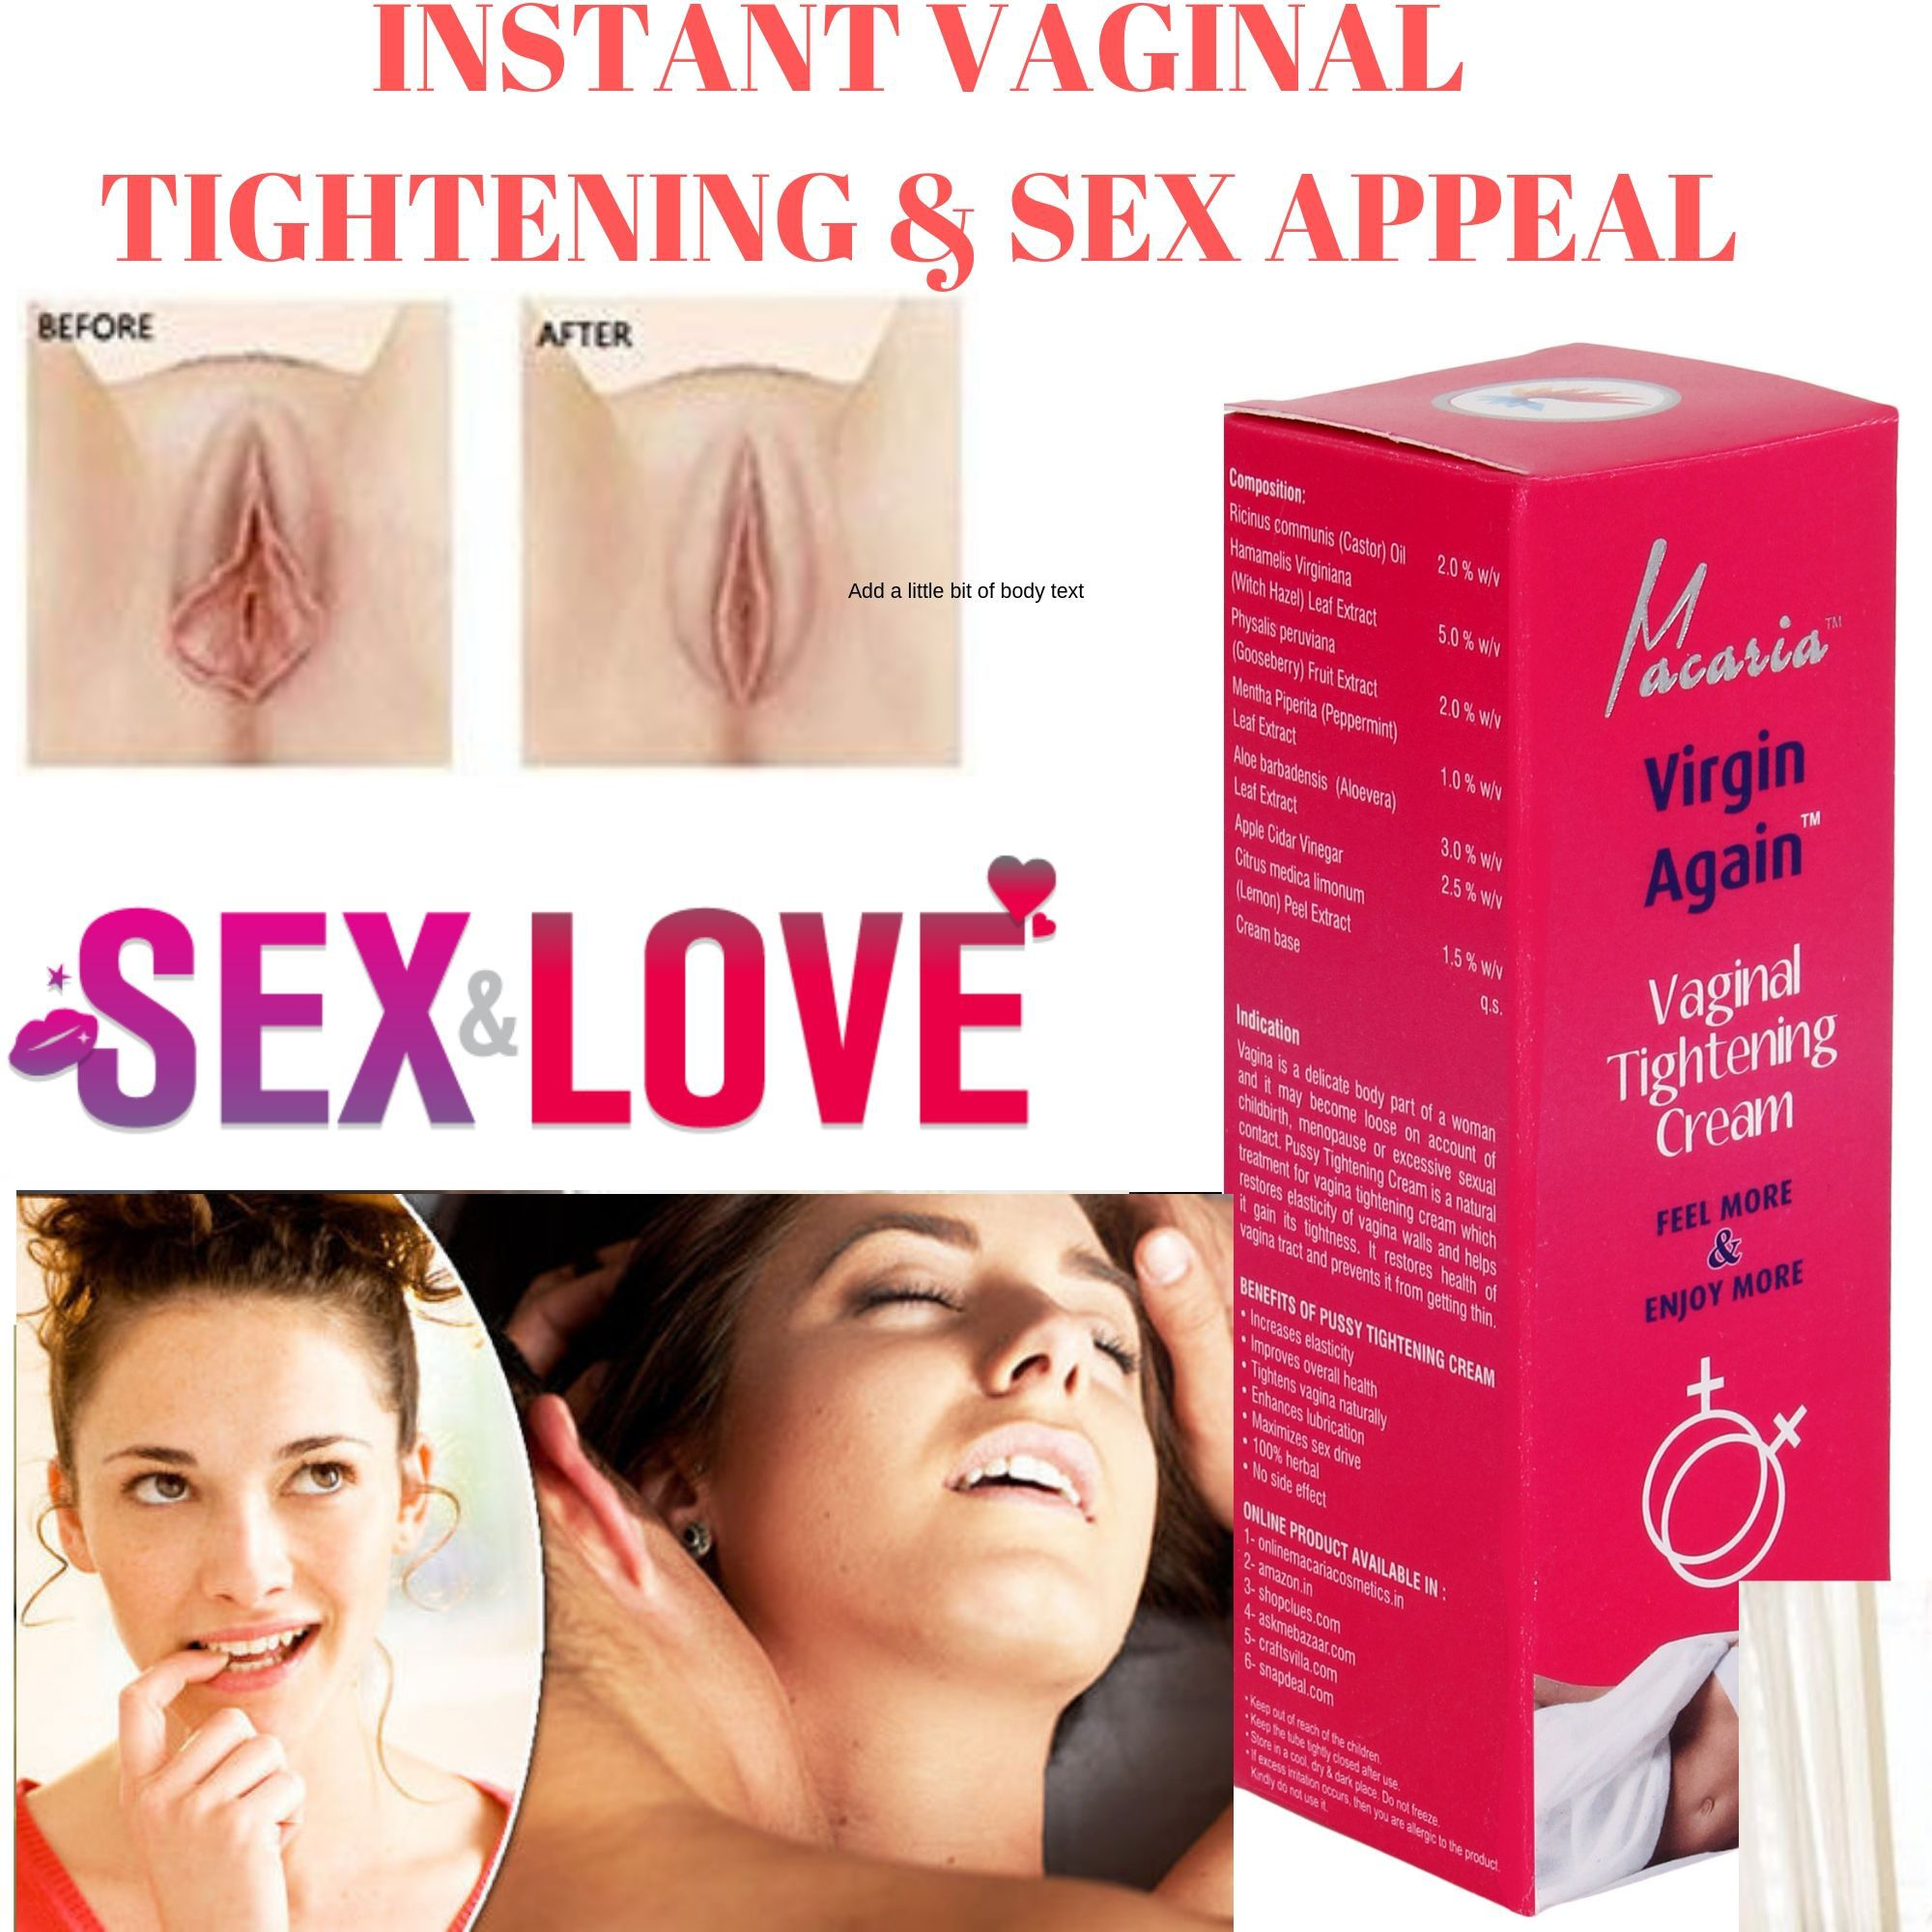 Tight V A G I N A L Tightening Gel Cream Buy Tight V A G I N A L